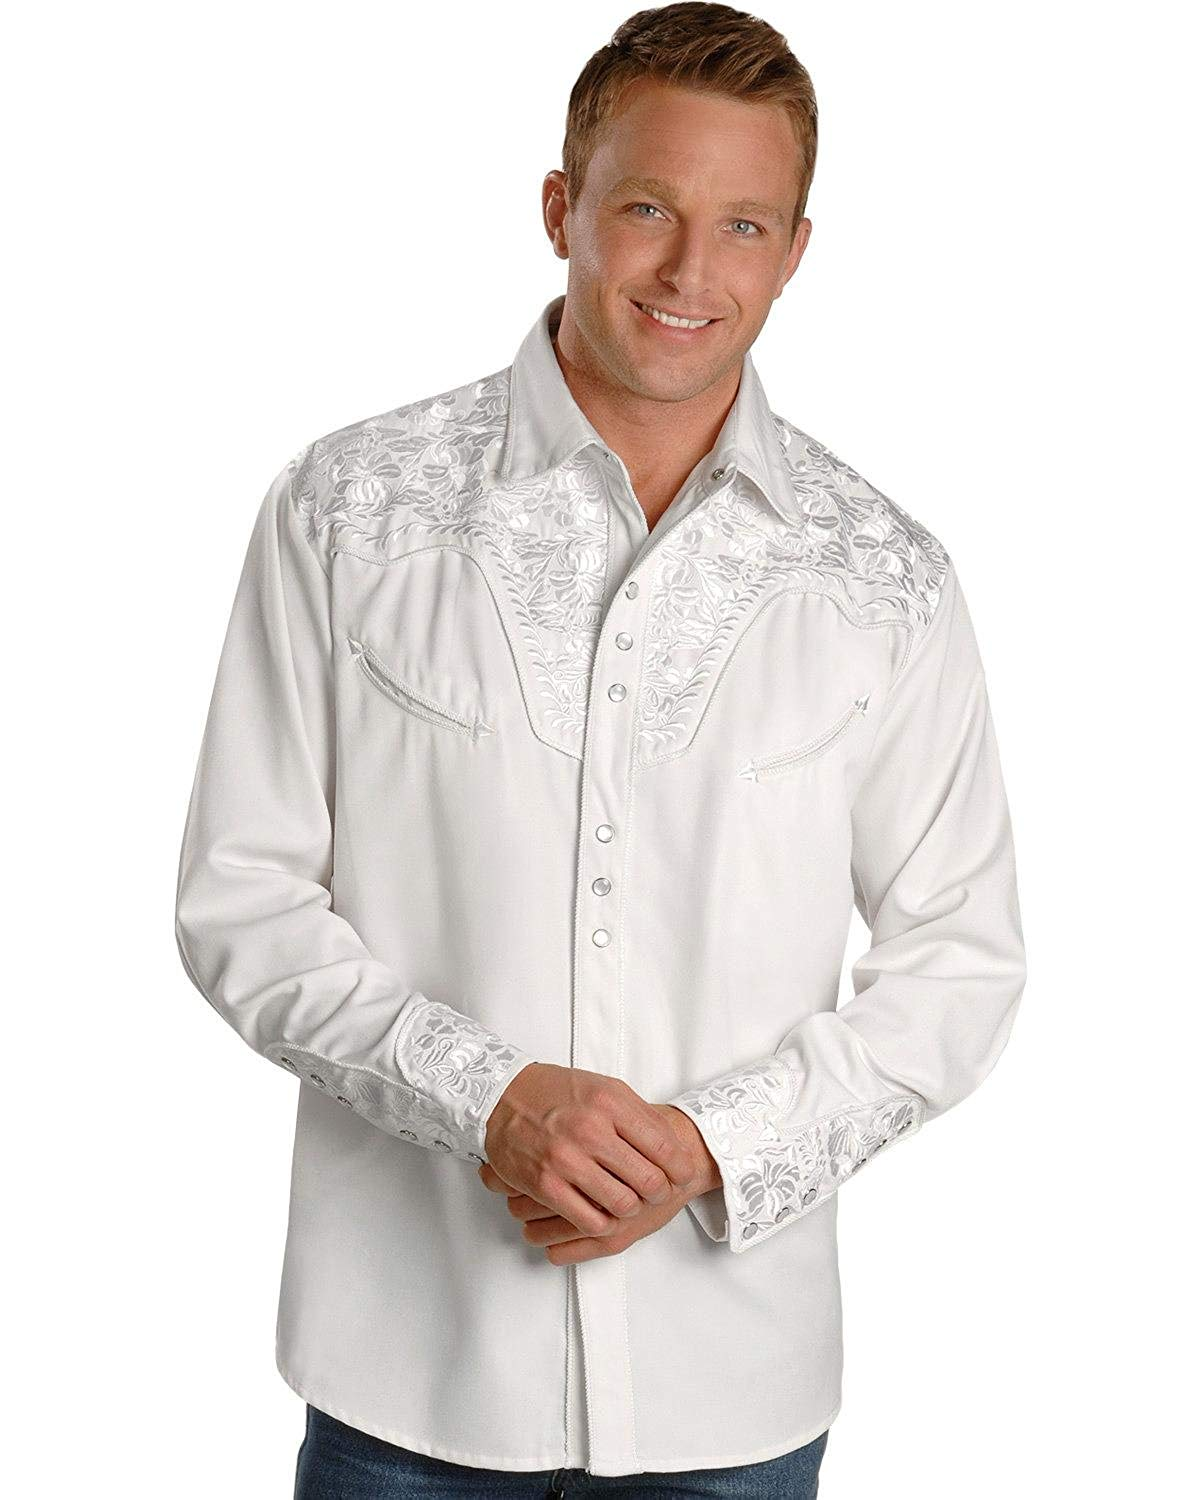 f6739009 Scully Men's White Floral Embroidery Retro Western Shirt - P-634 White